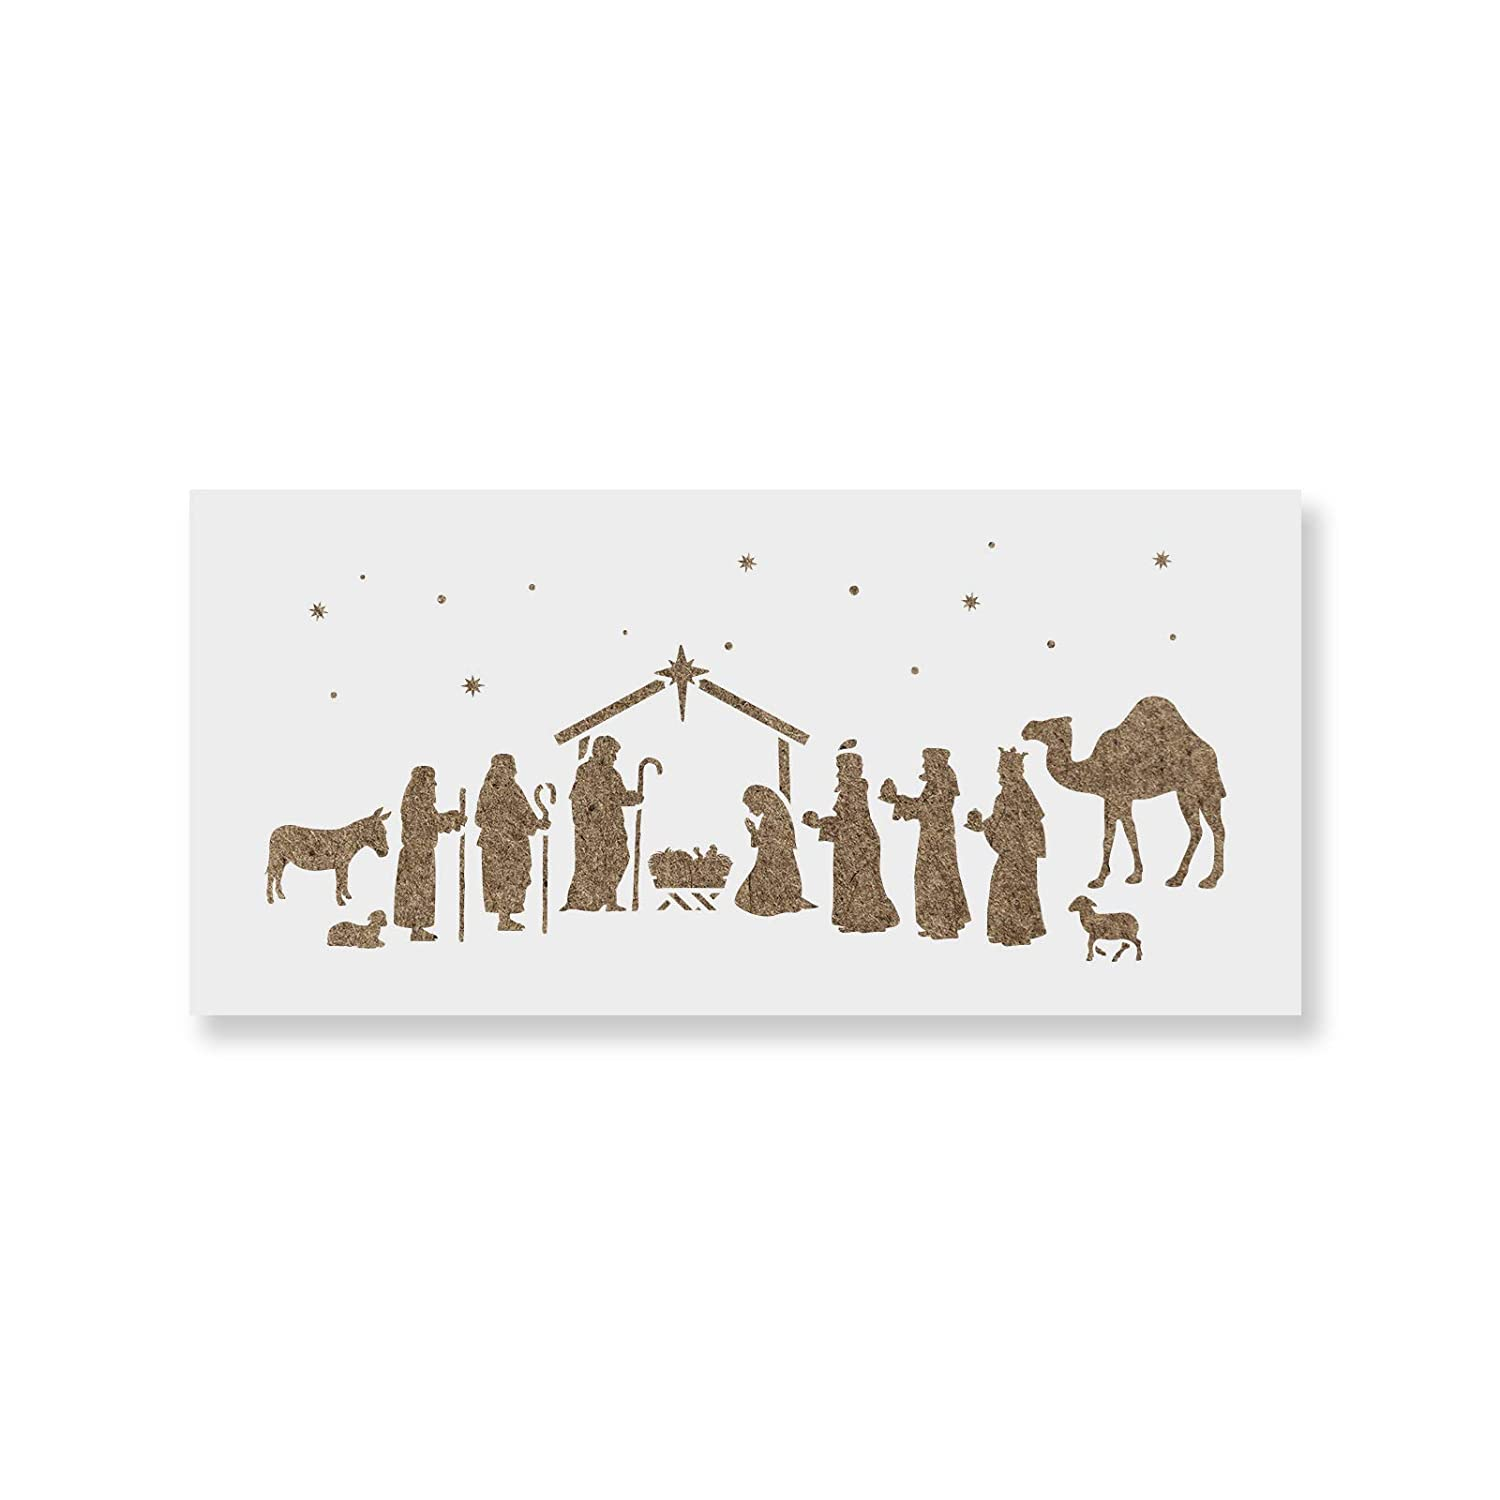 Nativity Stencil Template for Walls and Crafts - Reusable Stencils for Painting in Small & Large Sizes Stencil Revolution